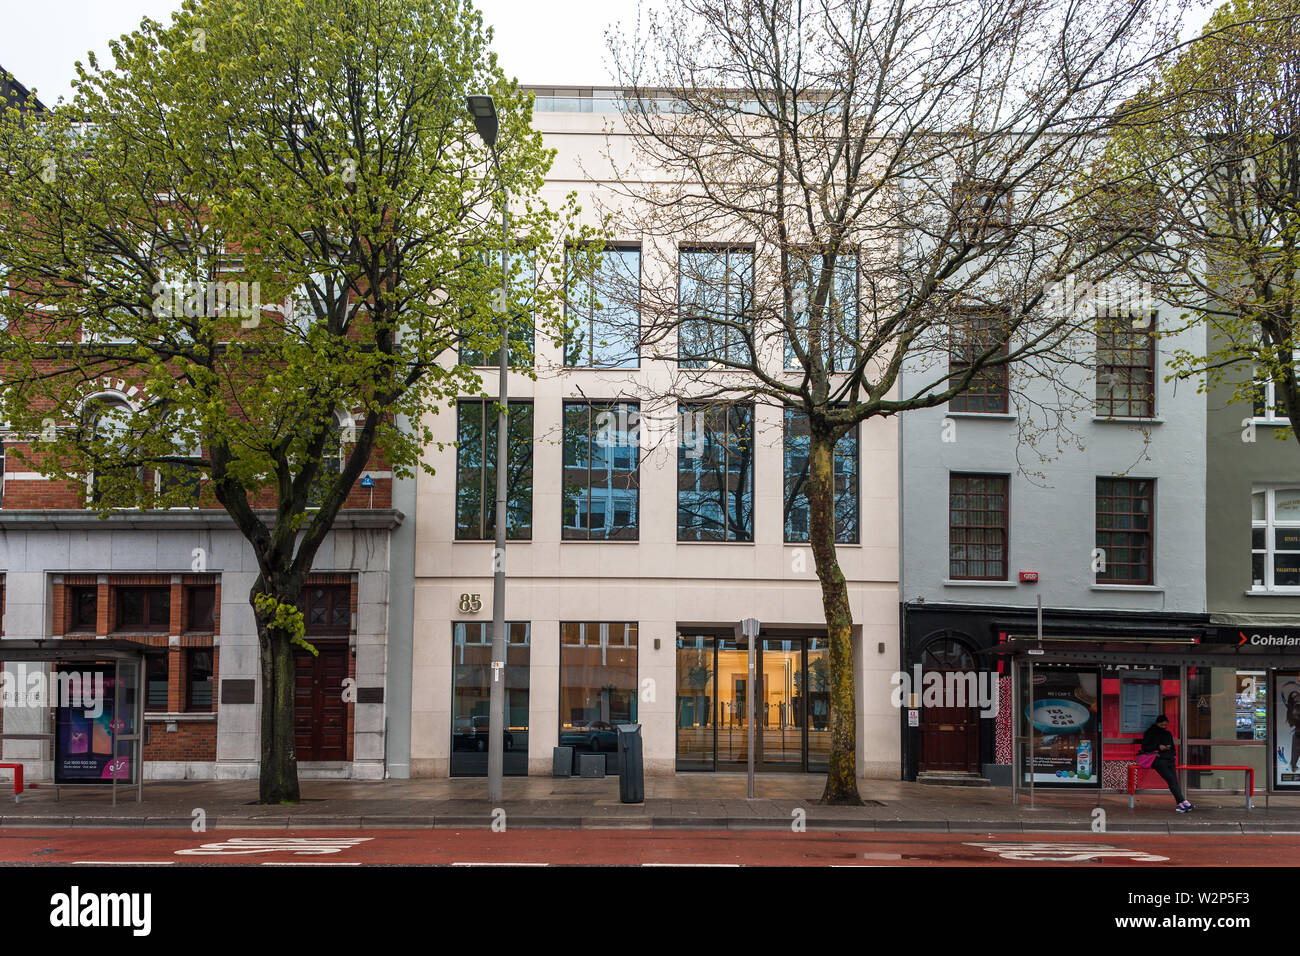 Cork City, Cork, Ireland. 06th April, 2019. Exterior of the brand new eighty5 building on the South Mall in Cork, Ireland. - Stock Image